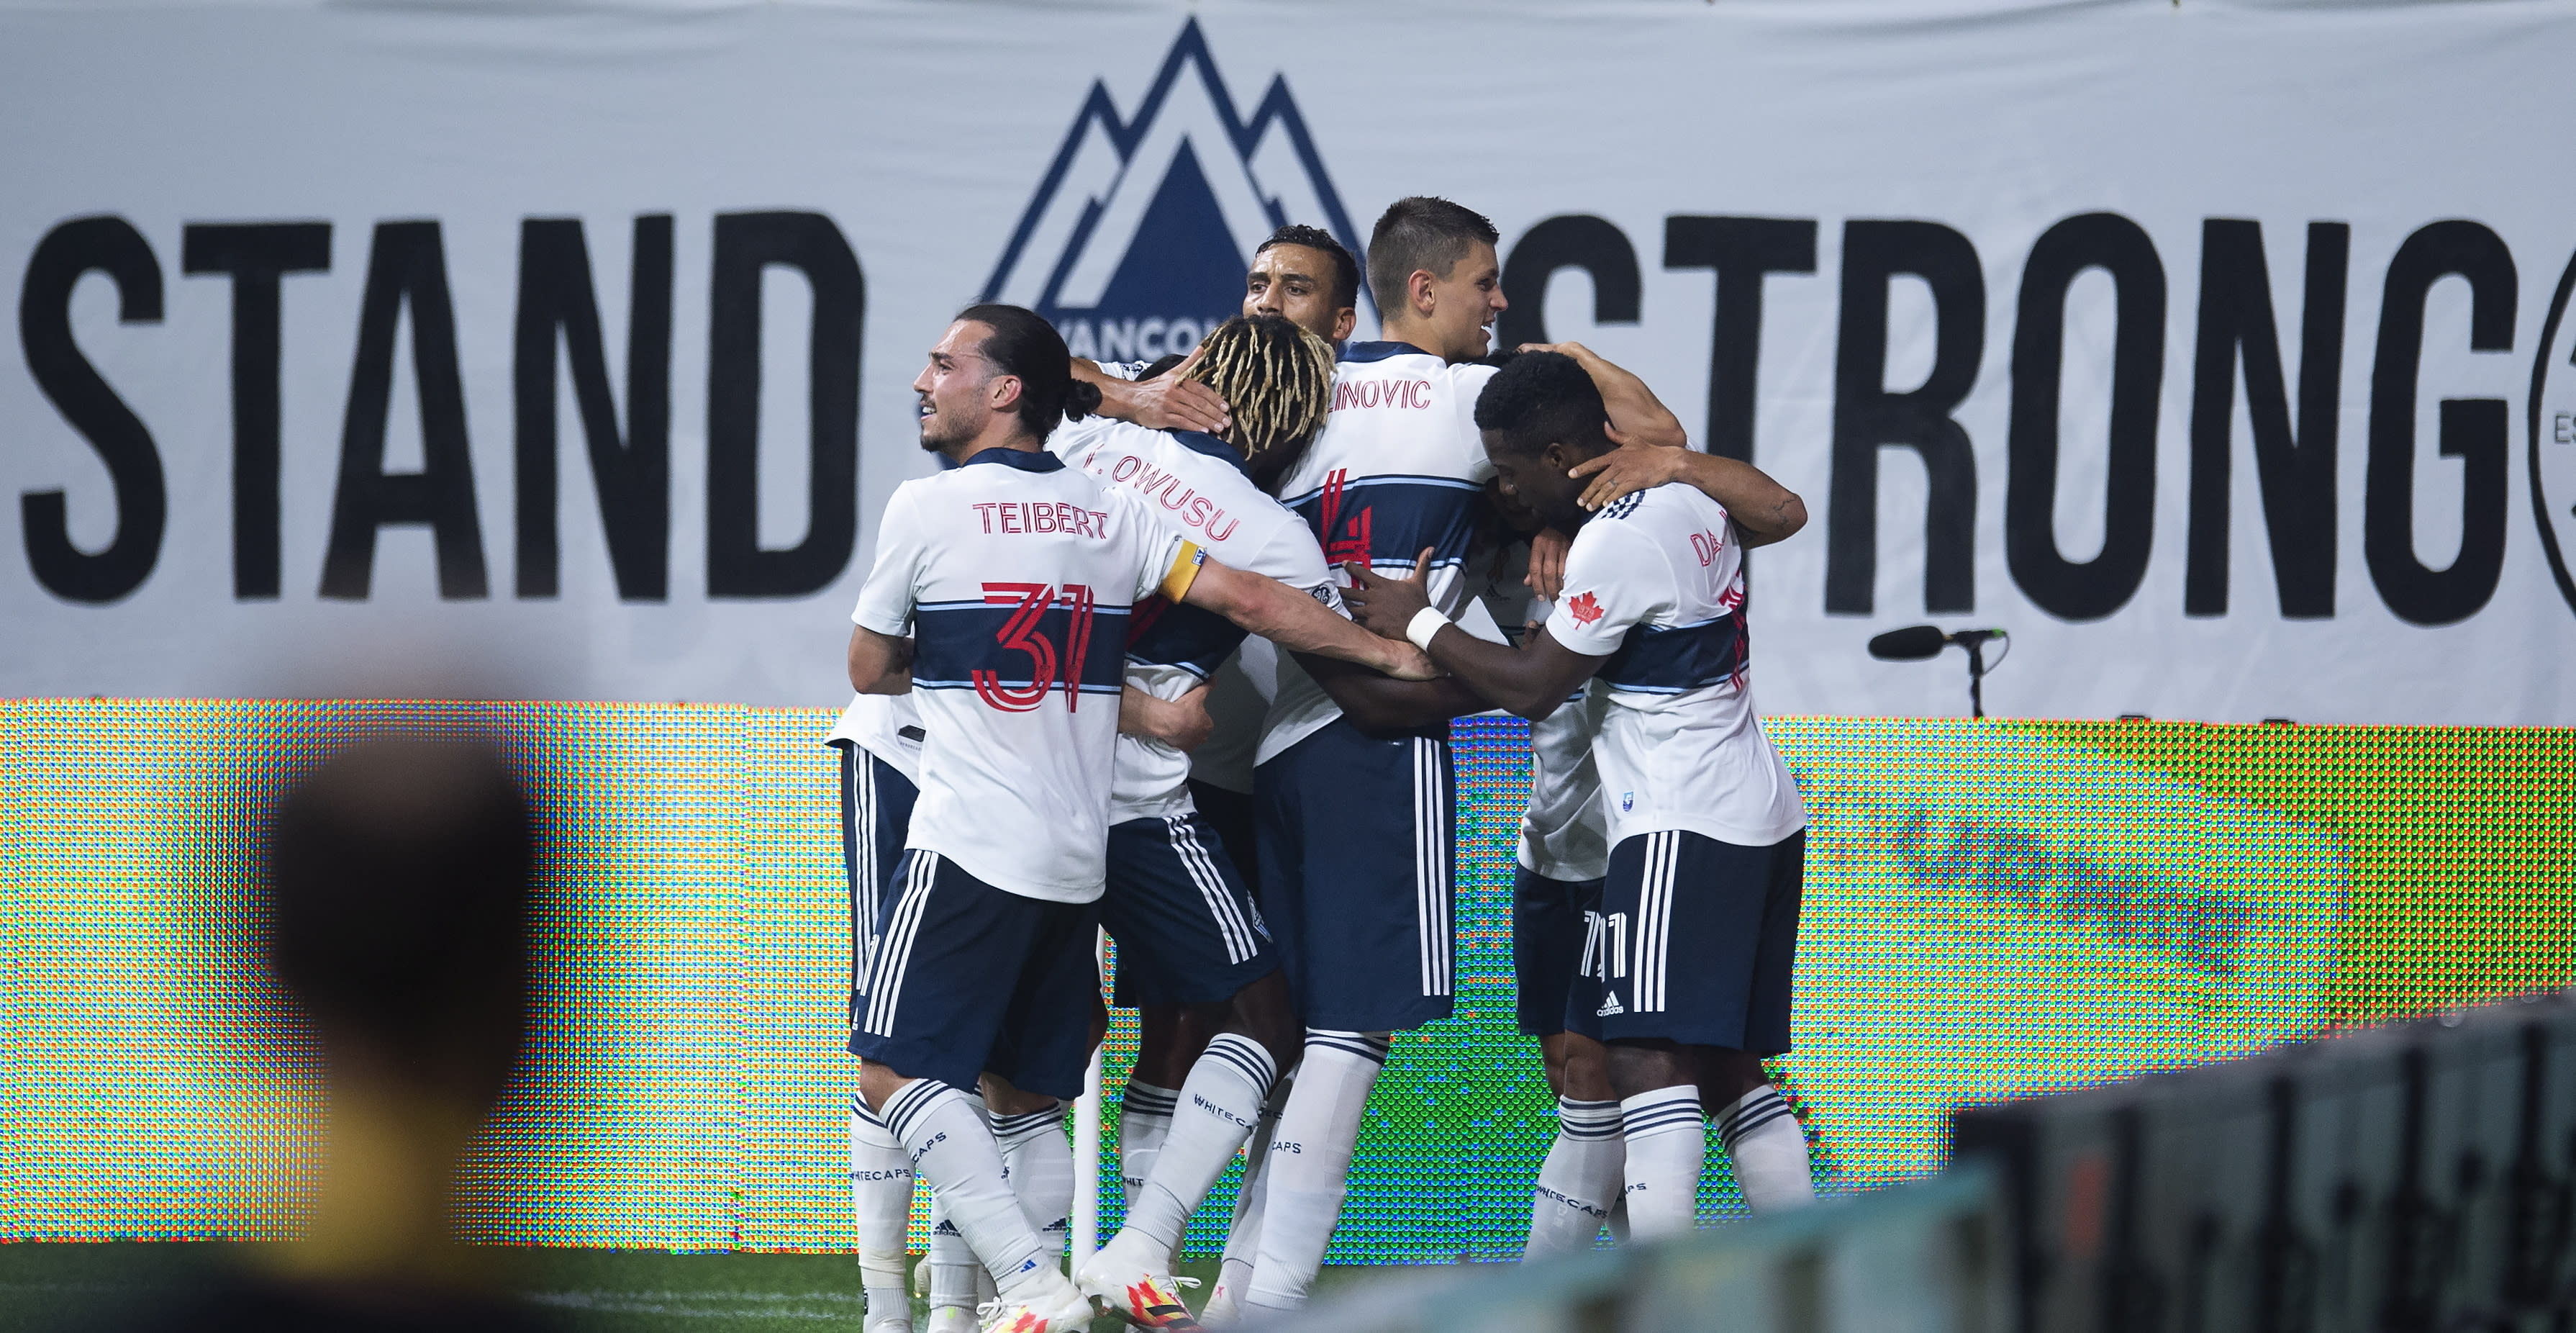 The Vancouver Whitecaps celebrate Fredy Montero's goal against the Montreal Impact during second half MLS soccer action in Vancouver, B.C. Wednesday, September, 16, 2020. THE CANADIAN PRESS/Jonathan Hayward/The Canadian Press via AP)during the second half of an MLS soccer match Wednesday, Sept. 16, 2020, in Vancouver, British Columbia. (Jonathan Hayward/The Canadian Press via AP)